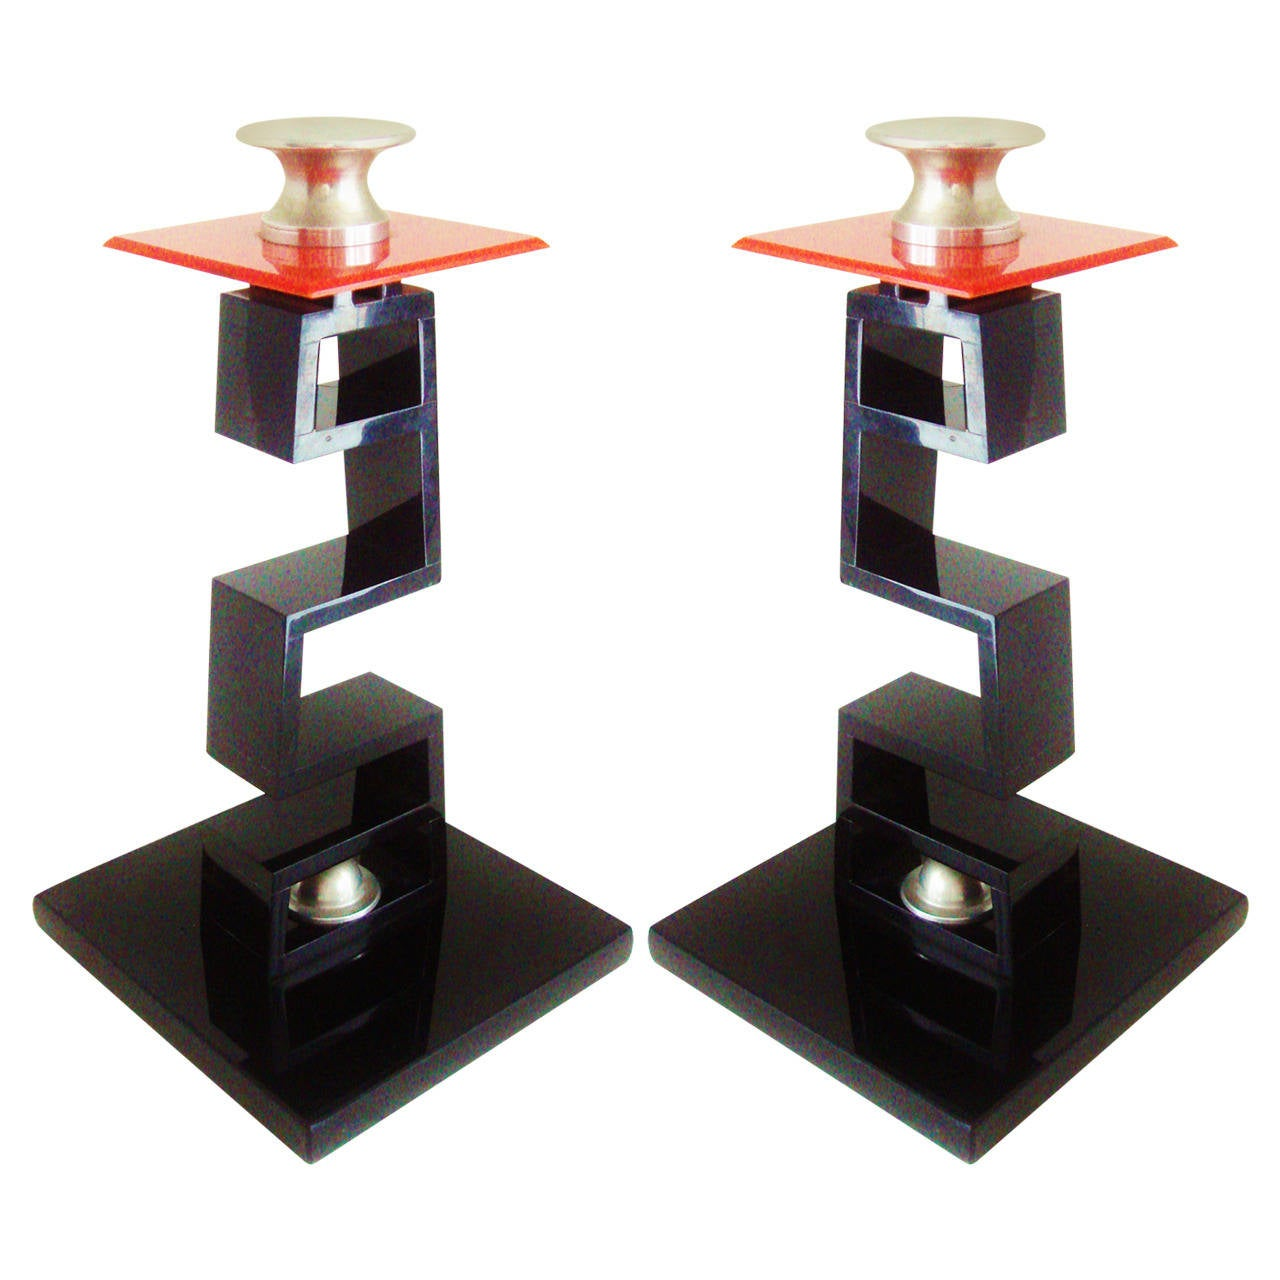 Pair of Large American Asian Inspired Candlesticks in the Manner of James Mont For Sale